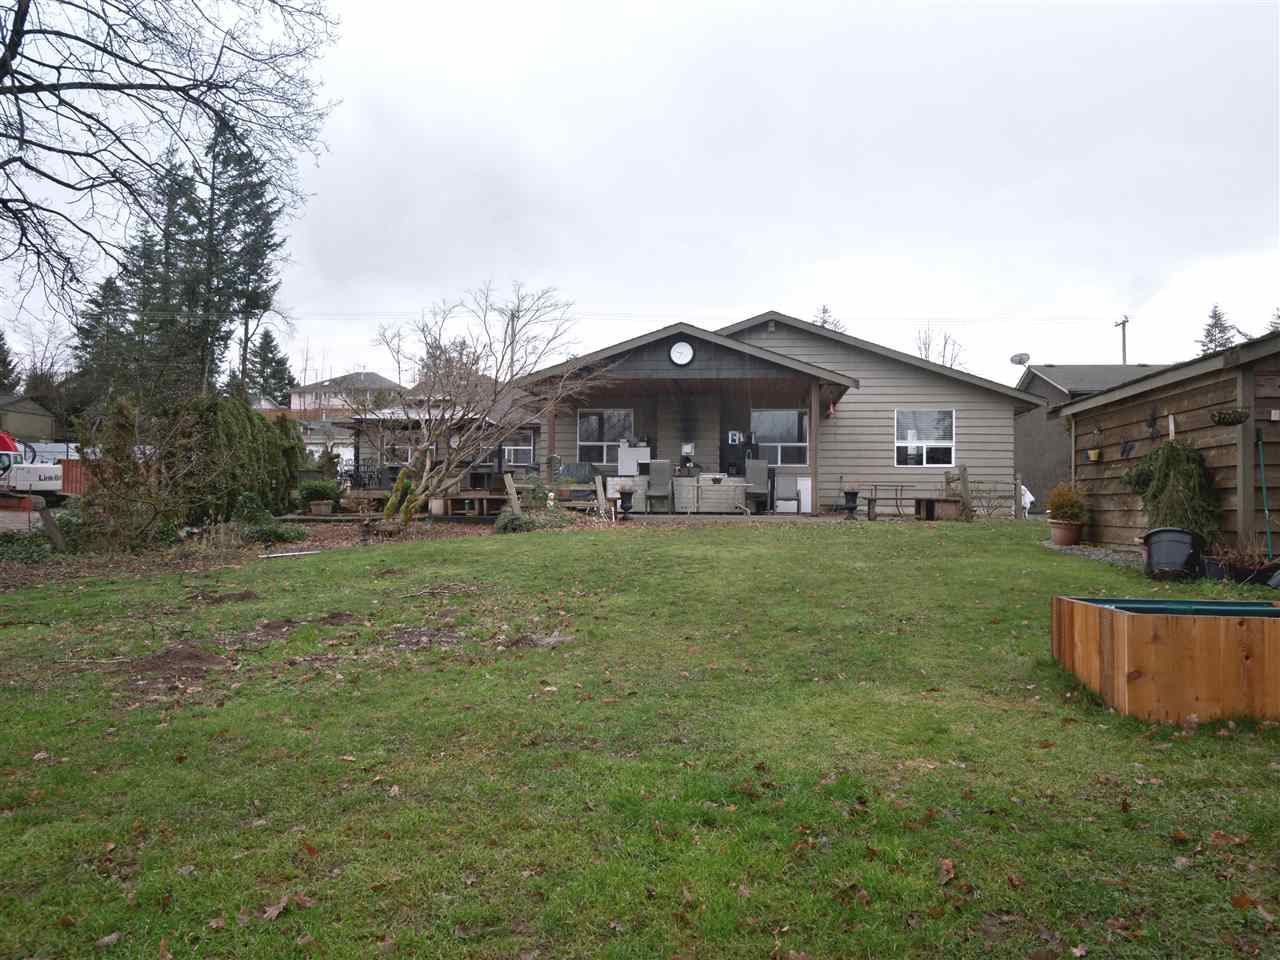 Photo 20: Photos: 33157 CHERRY Avenue in Mission: Mission BC House for sale : MLS® # R2236874